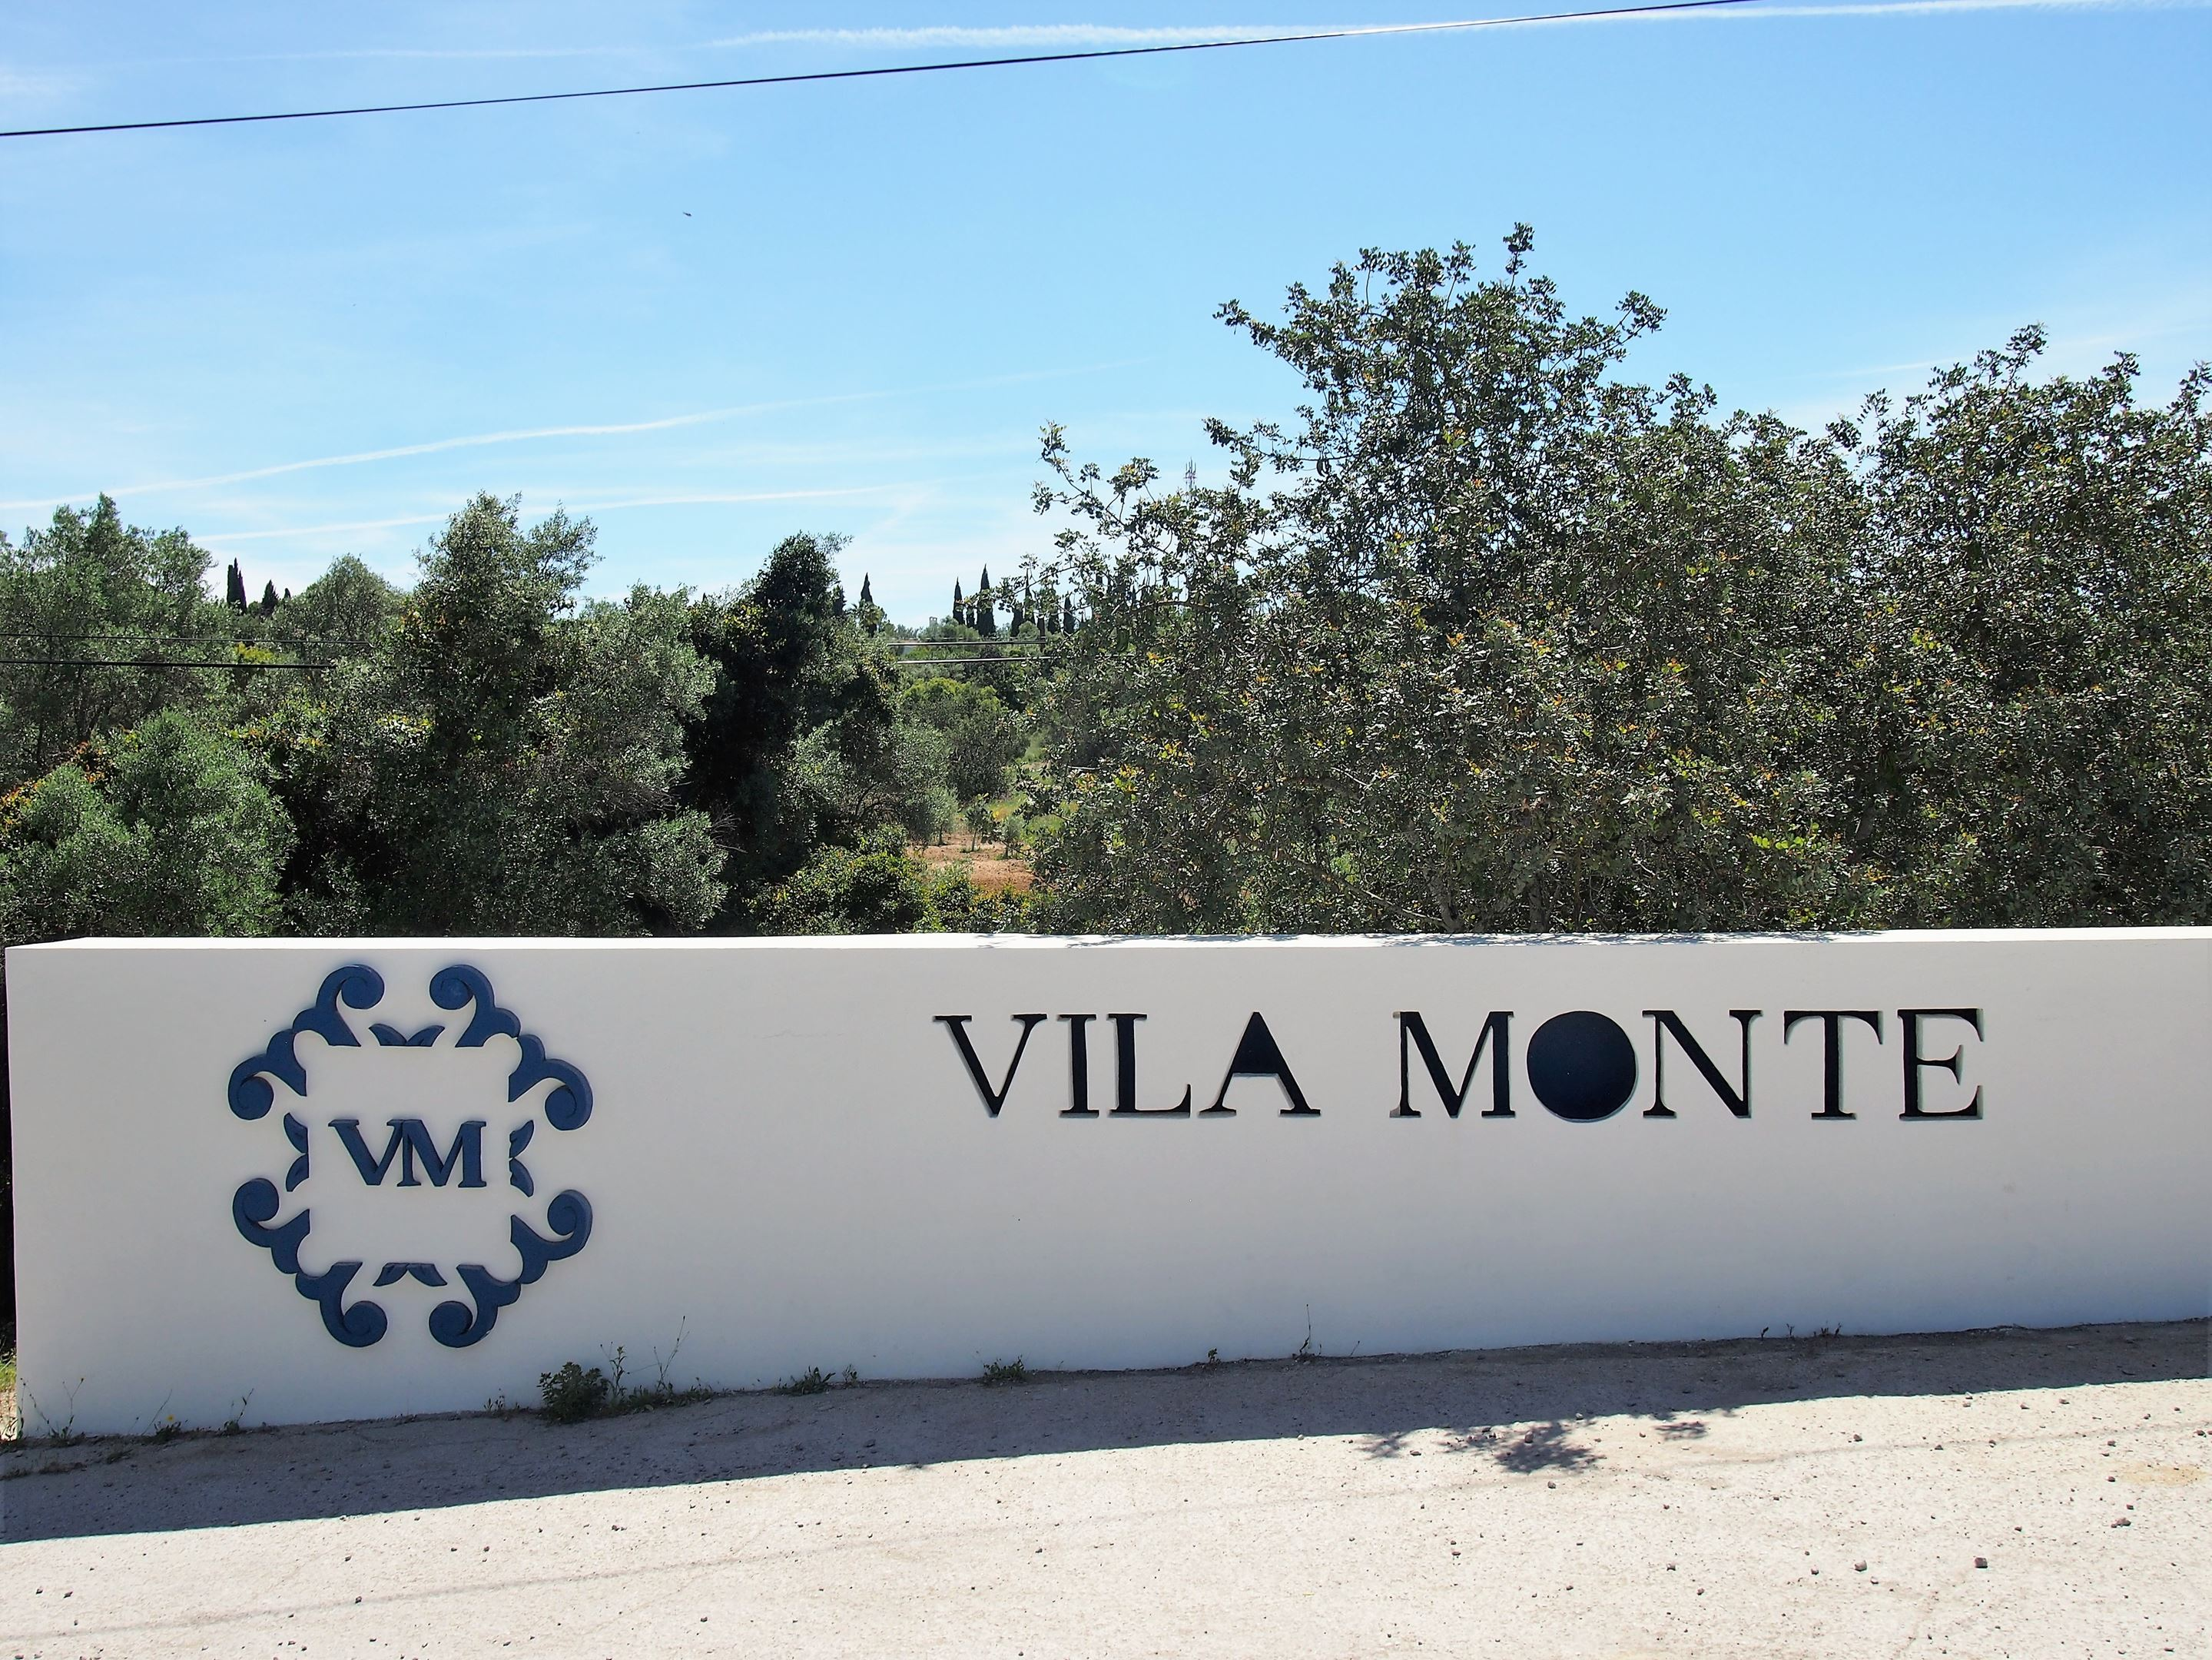 Entrance to Vila Monte, near Olhão